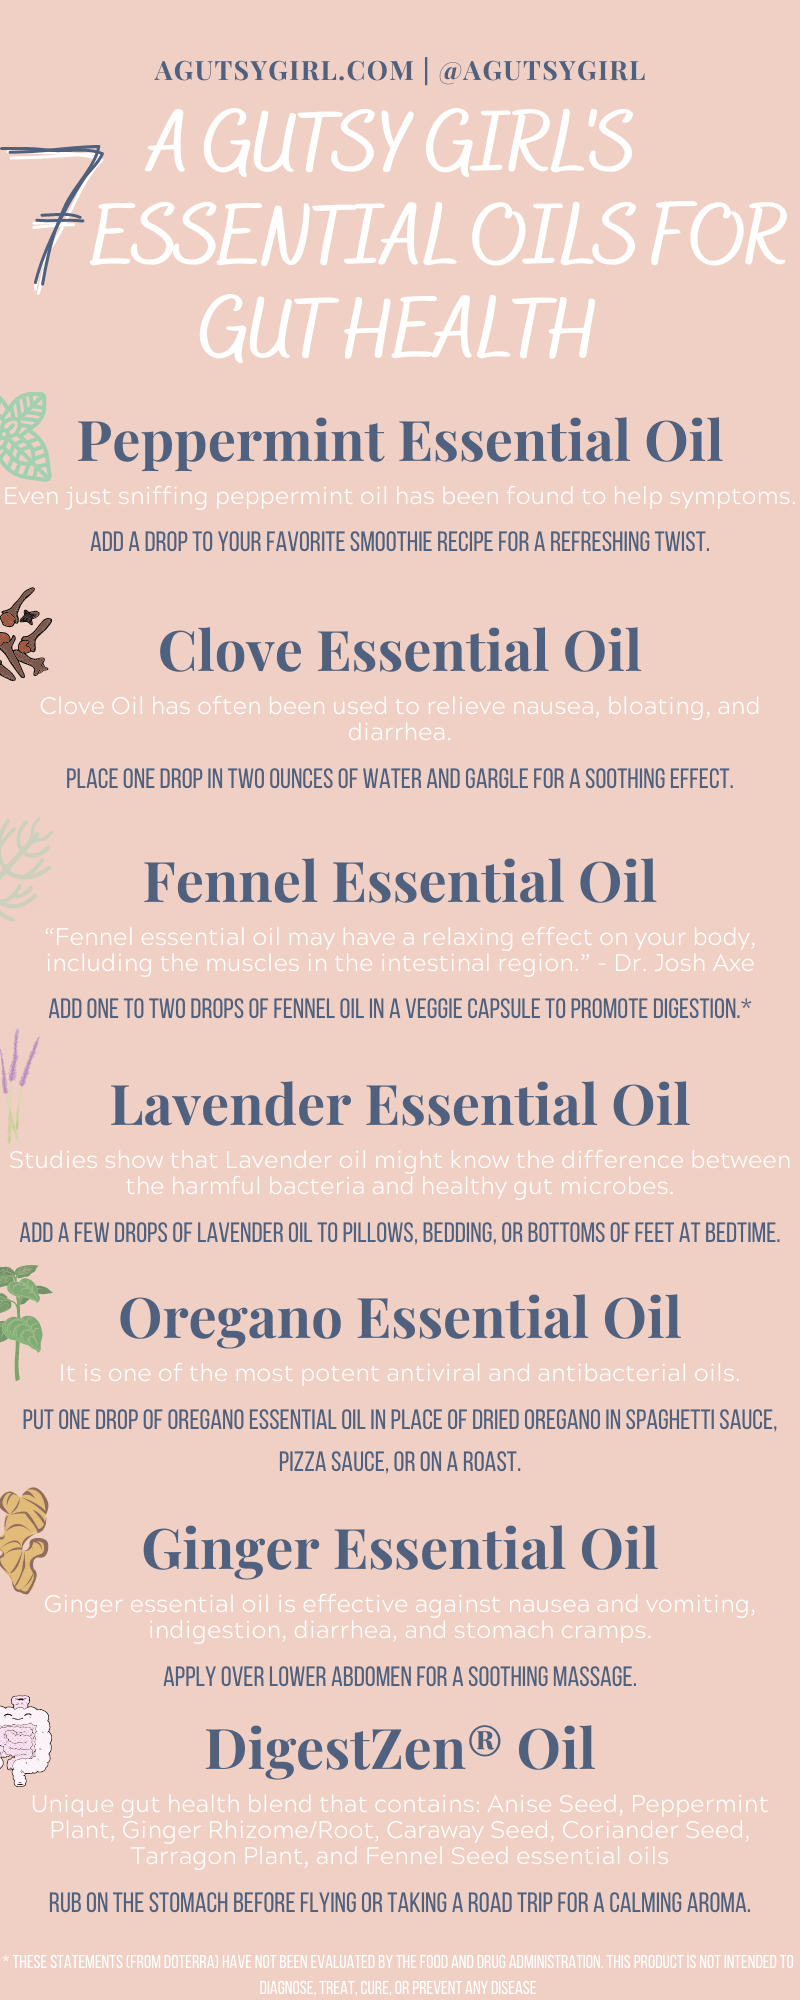 A Gutsy Girl's 7 Essential Oils for Gut Health agutsygirl.com #guthealth #essentialoil #essentialoils